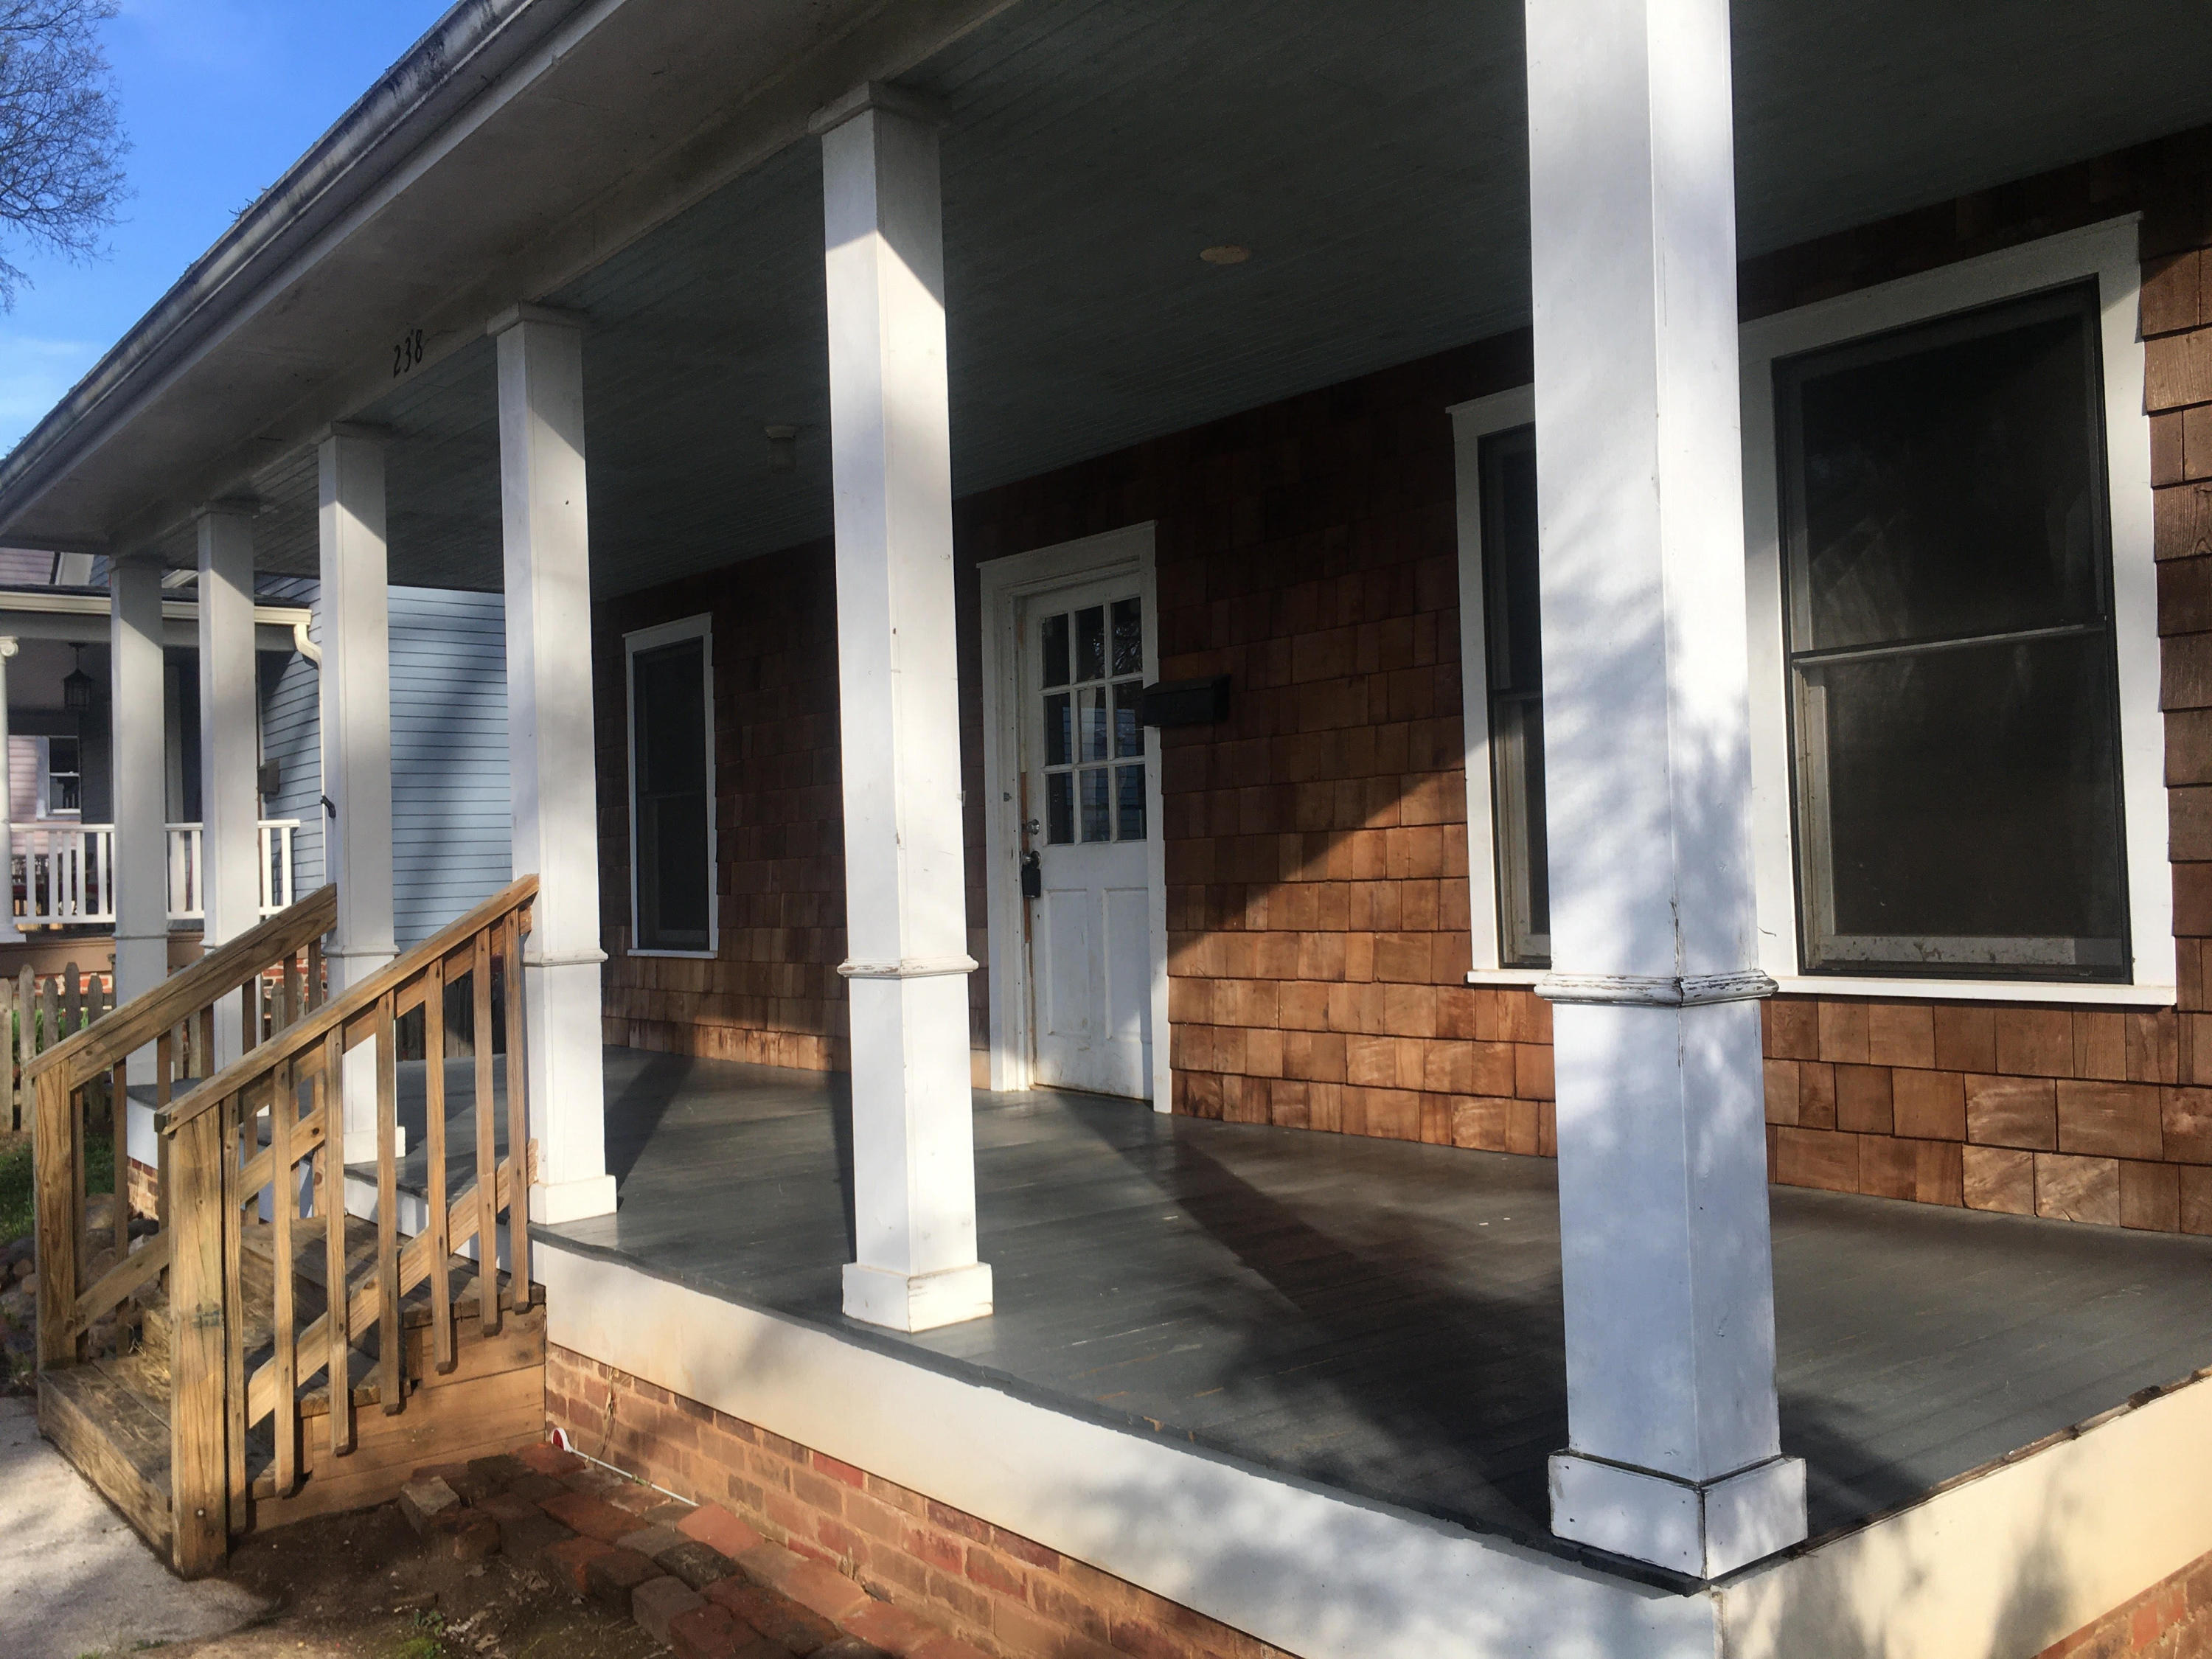 238 Oklahoma Ave, Knoxville, Tennessee 37917, 5 Bedrooms Bedrooms, ,2 BathroomsBathrooms,Single Family,For Sale,Oklahoma,1112224